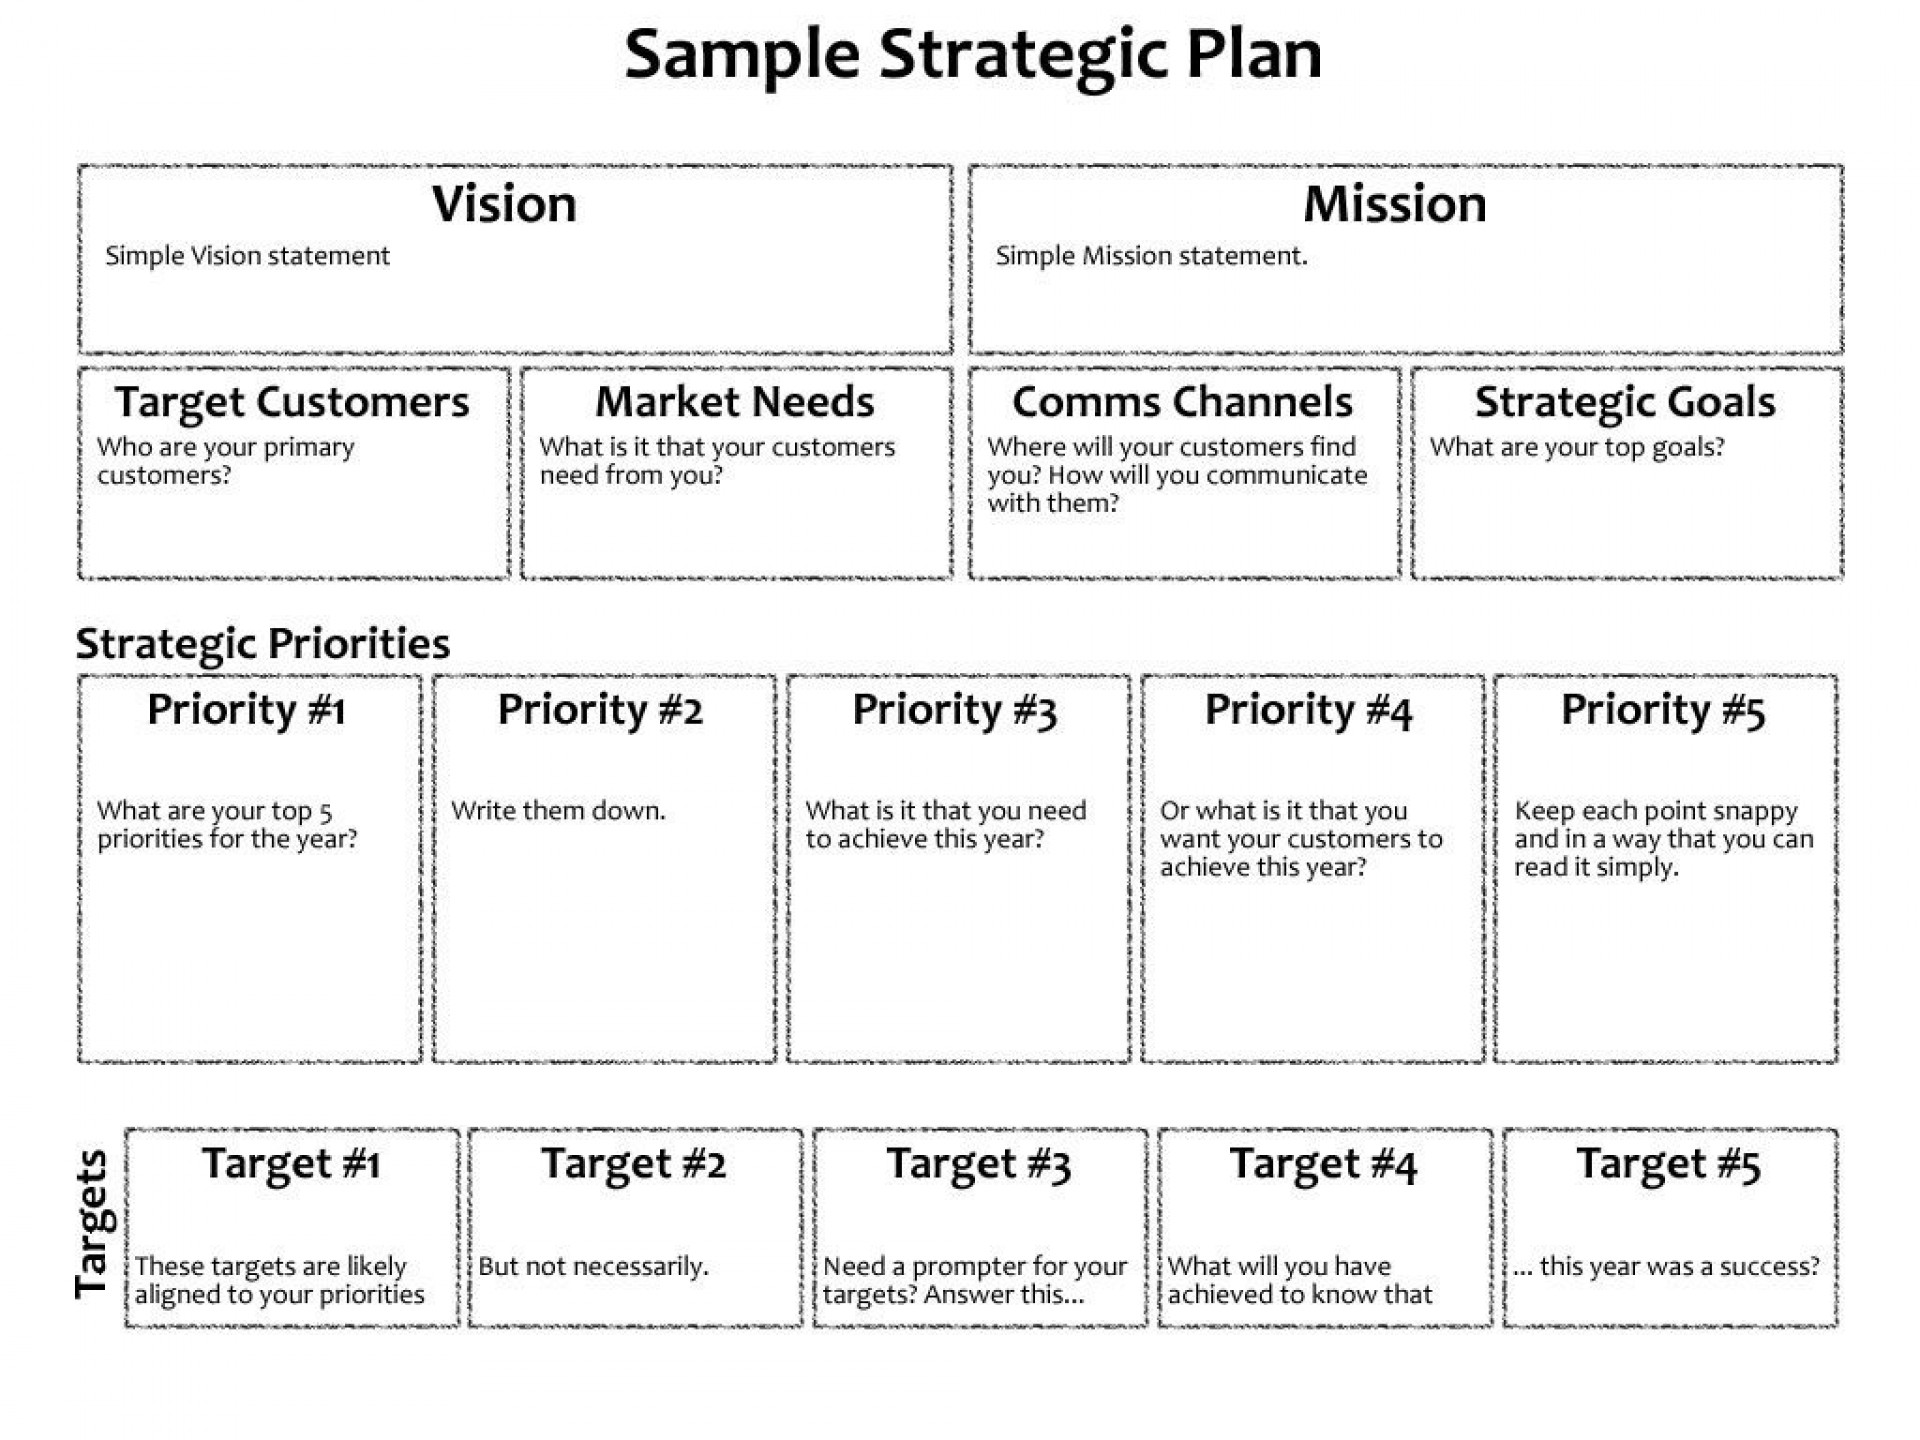 005 Magnificent Strategic Plan Outline Template Example  Marketing1920